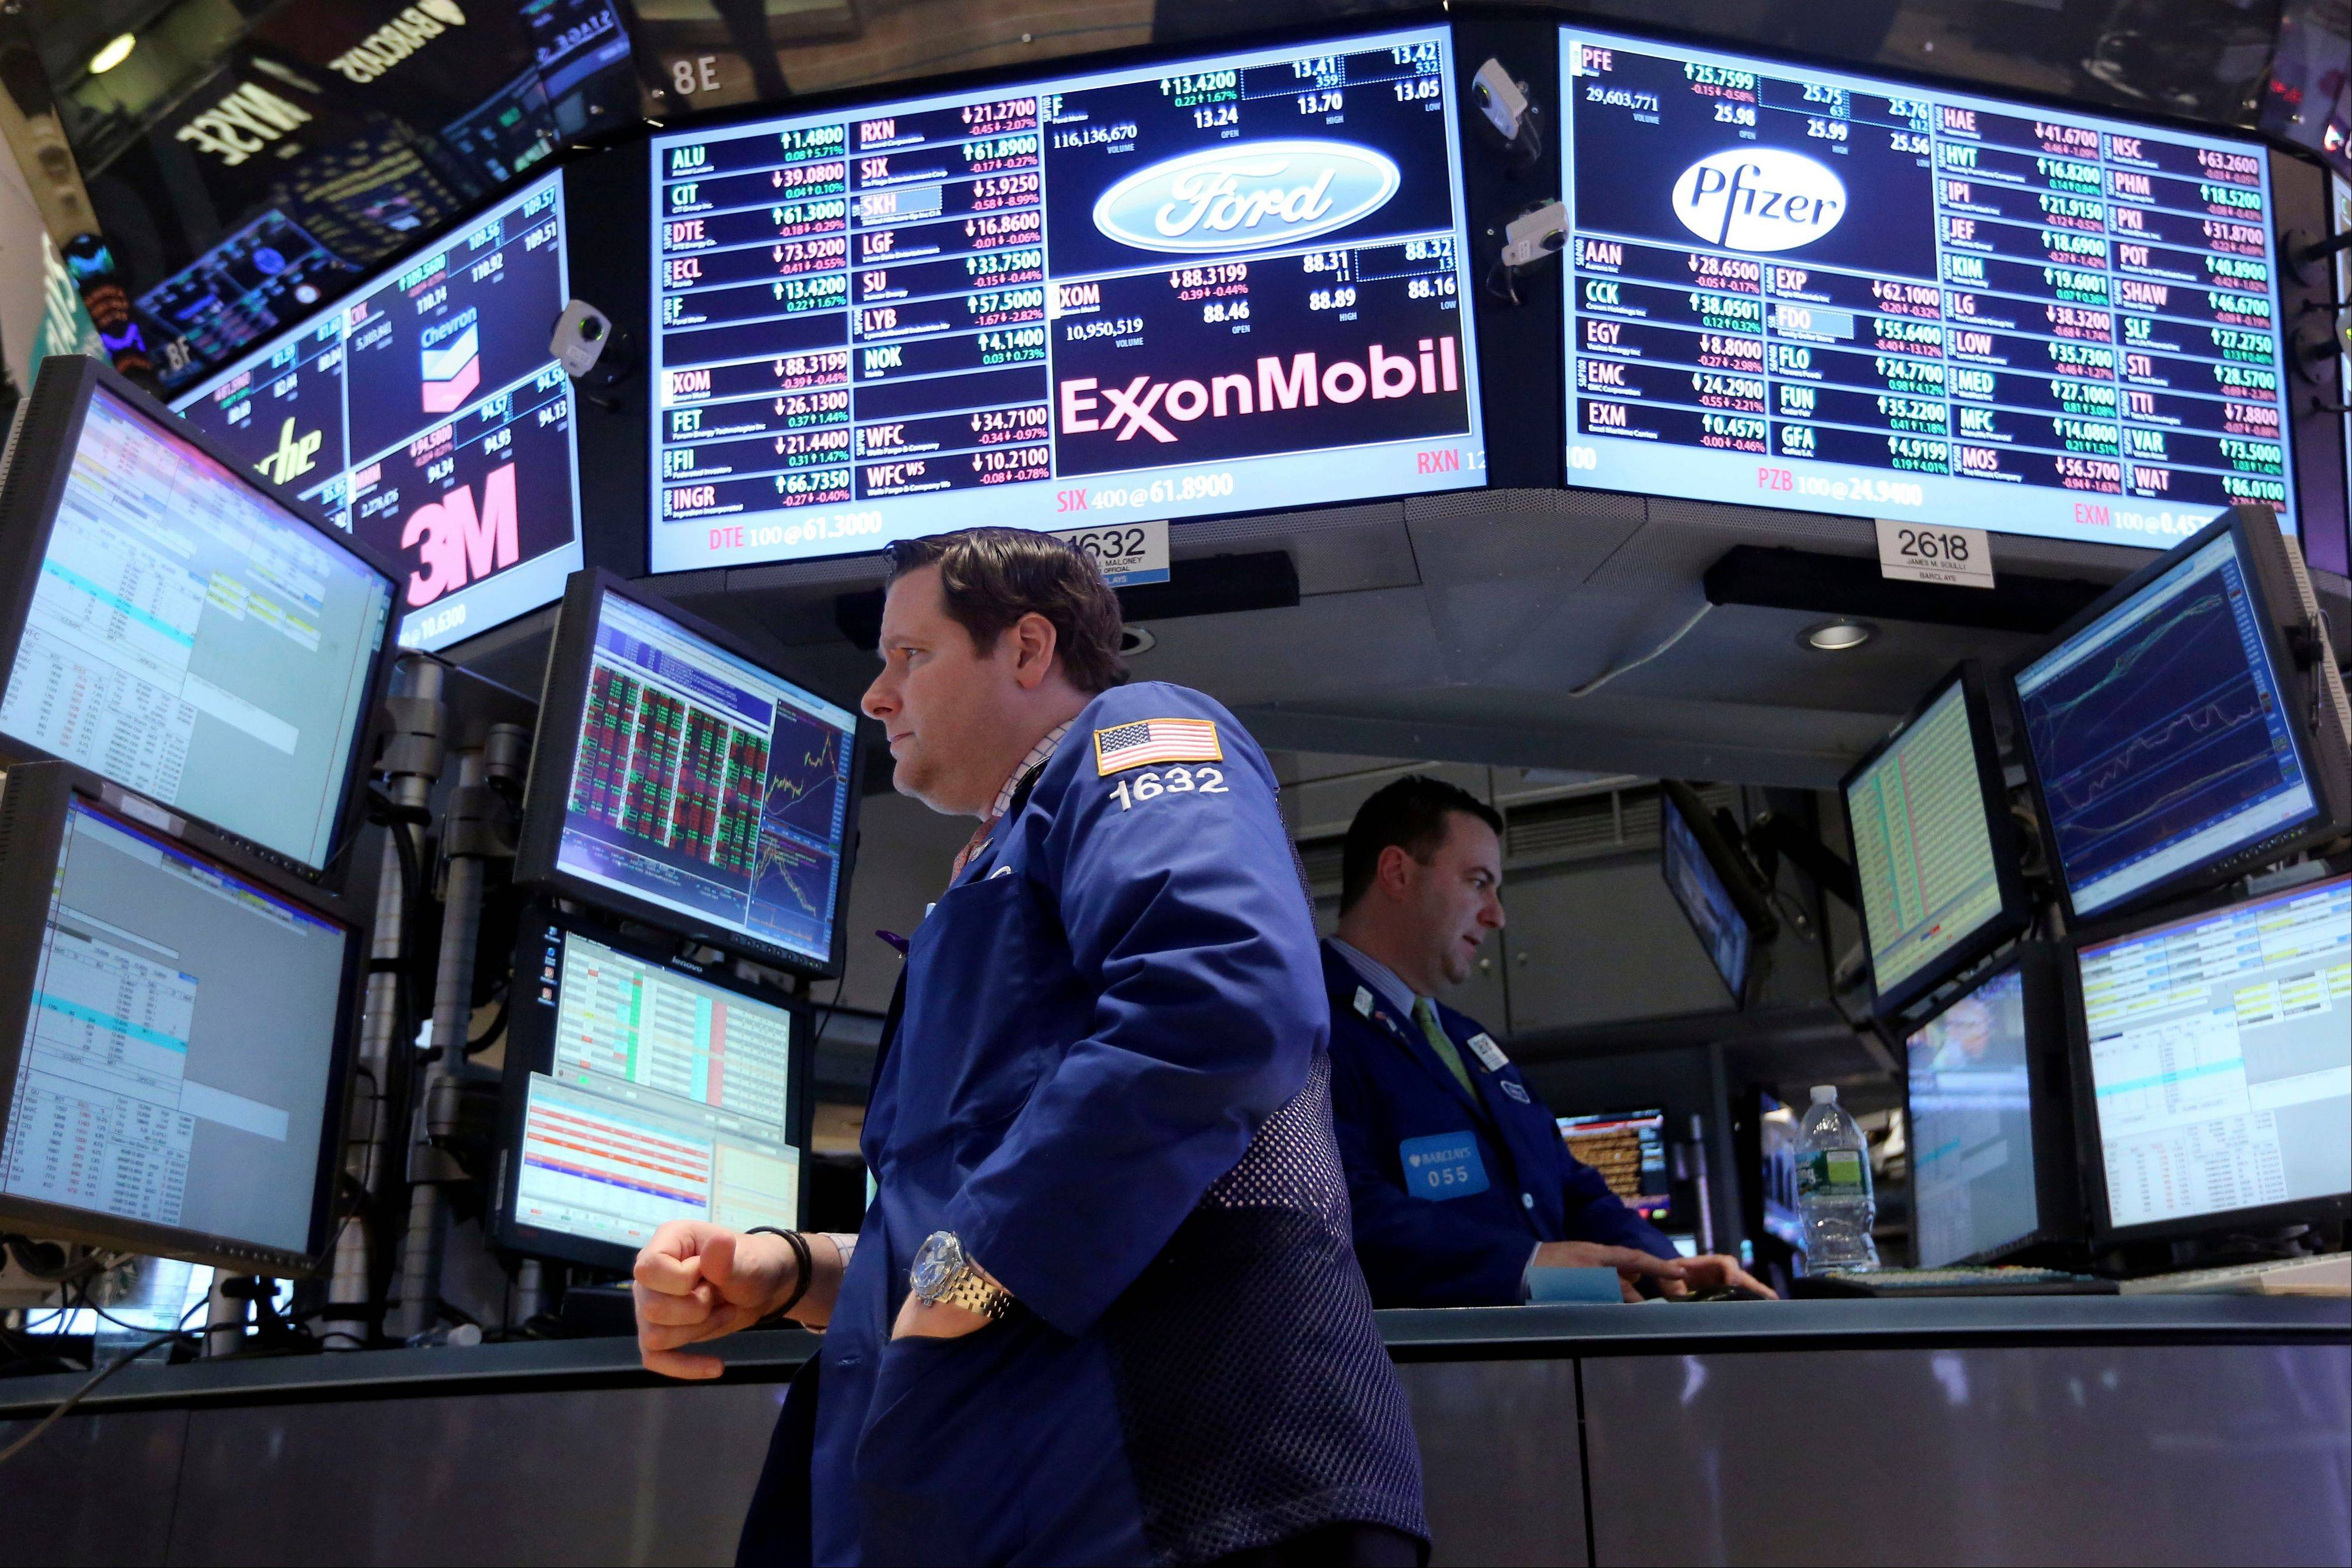 Stocks edged higher after a report showed that hiring held up in December, keeping the Dow on track for its best week in more than six months. The Dow Jones industrial average was up 16 points to 13,407 as of 1:22 p.m. EST Friday. It's up 3.6 percent for the week, putting it on track for its biggest weekly advance since June.